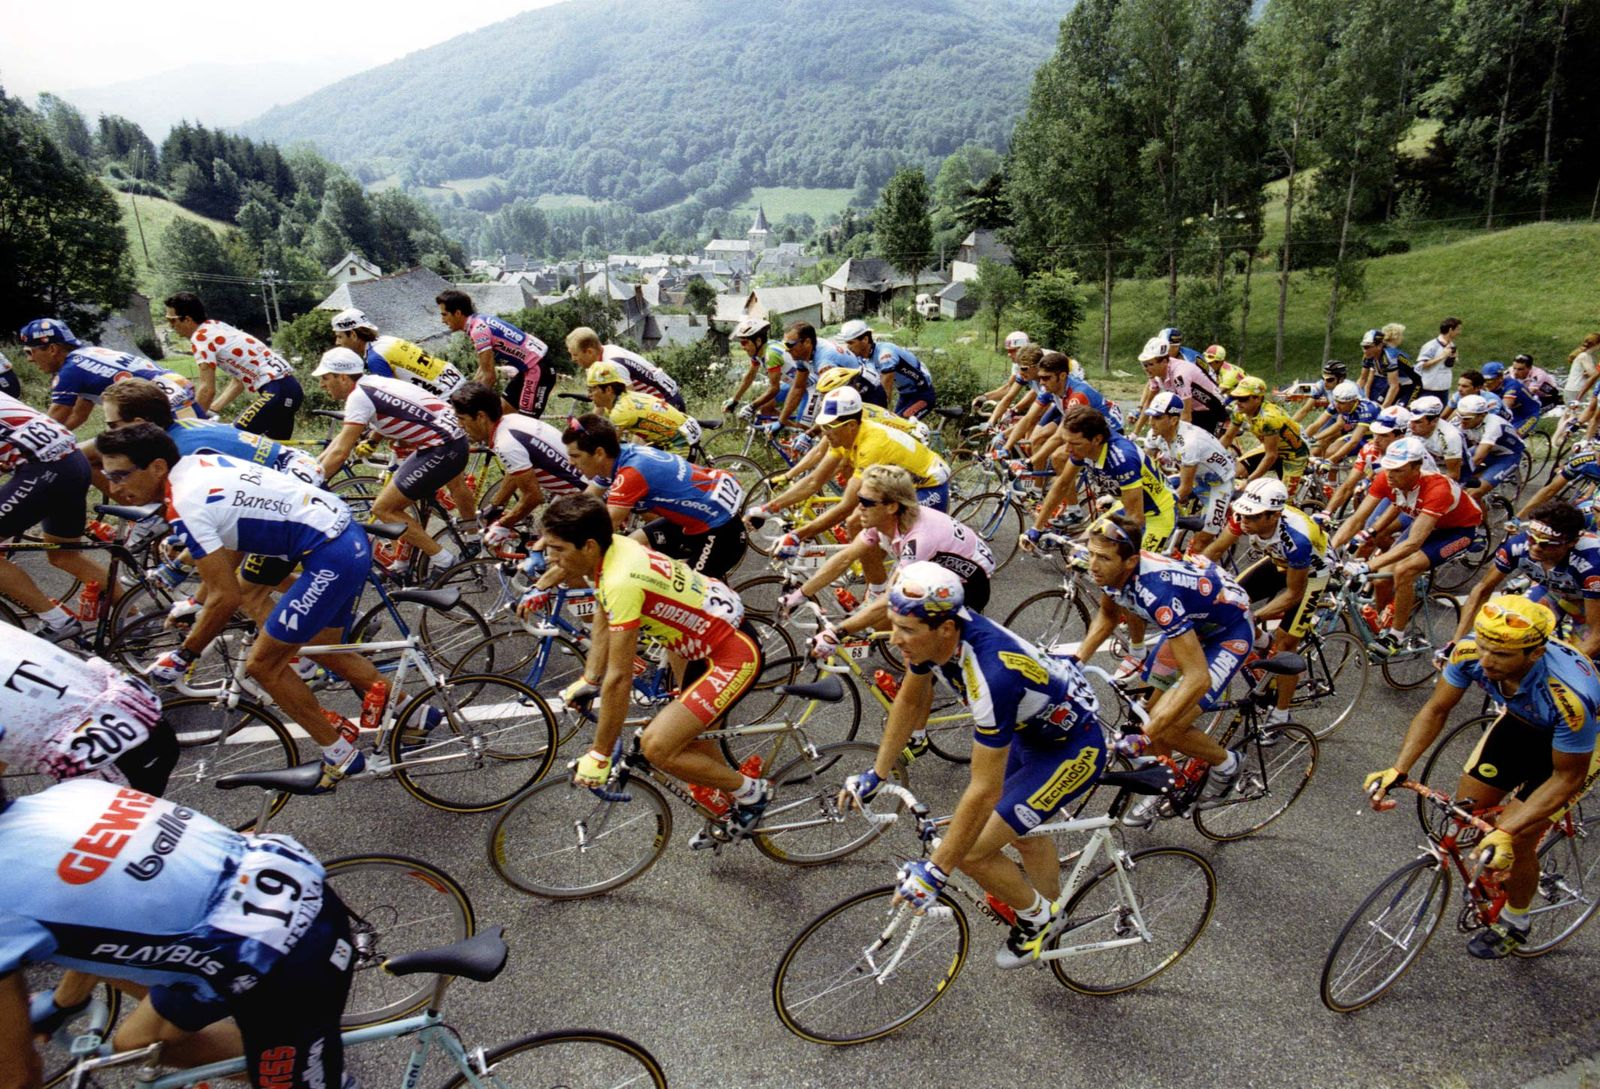 The pack of riders climbs the Col de Mente during the 206km 15th stage of the Tour de France cycling..